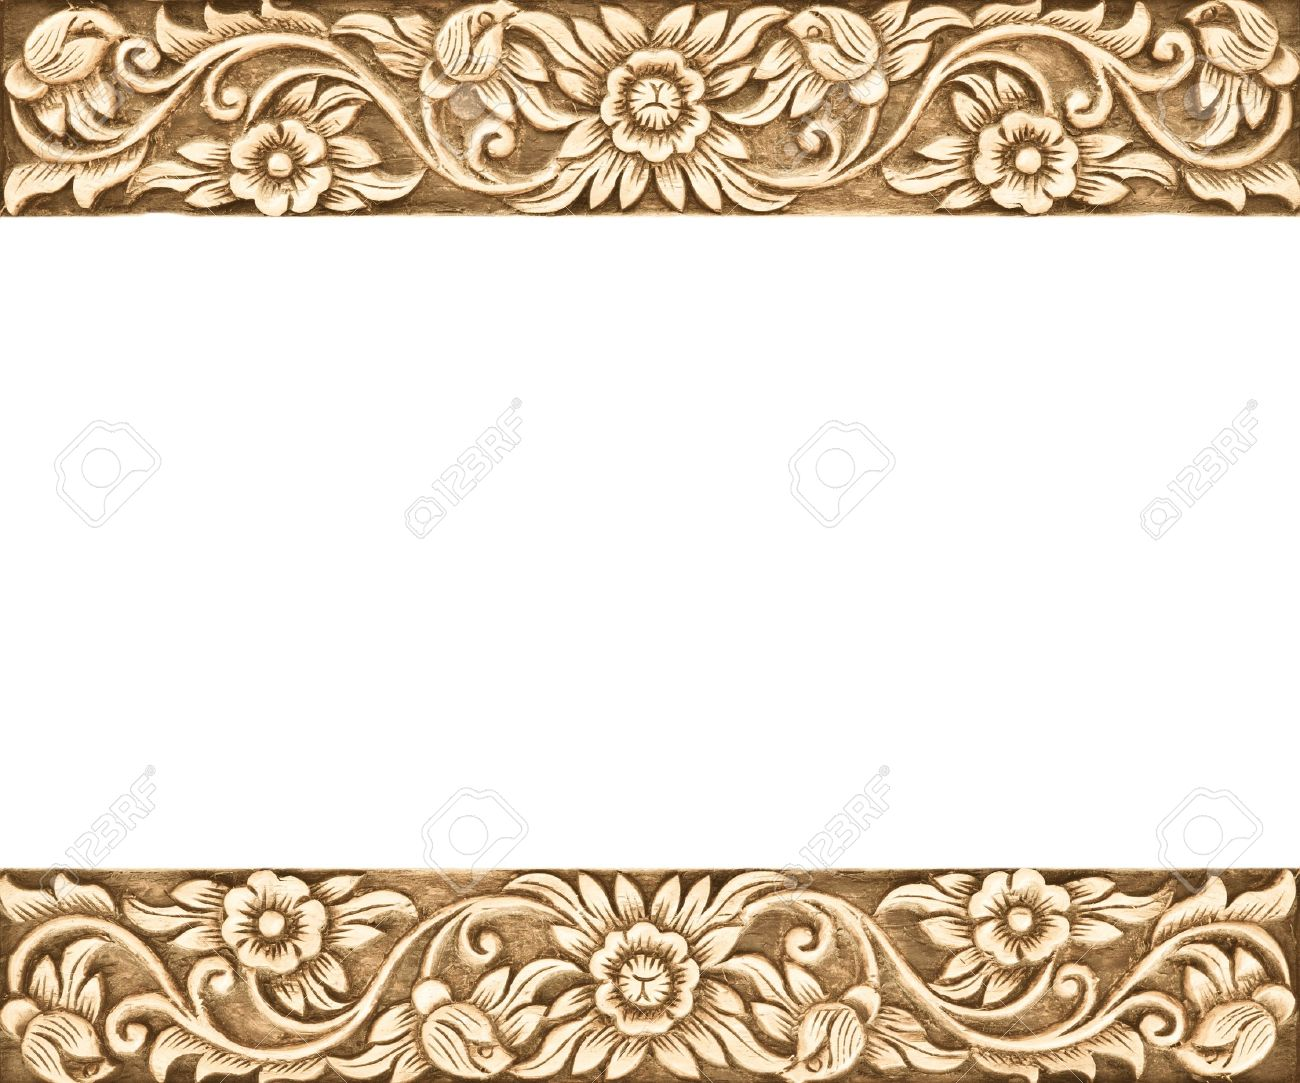 Pattern of flower carved frame on white background Stock Photo - 15299326